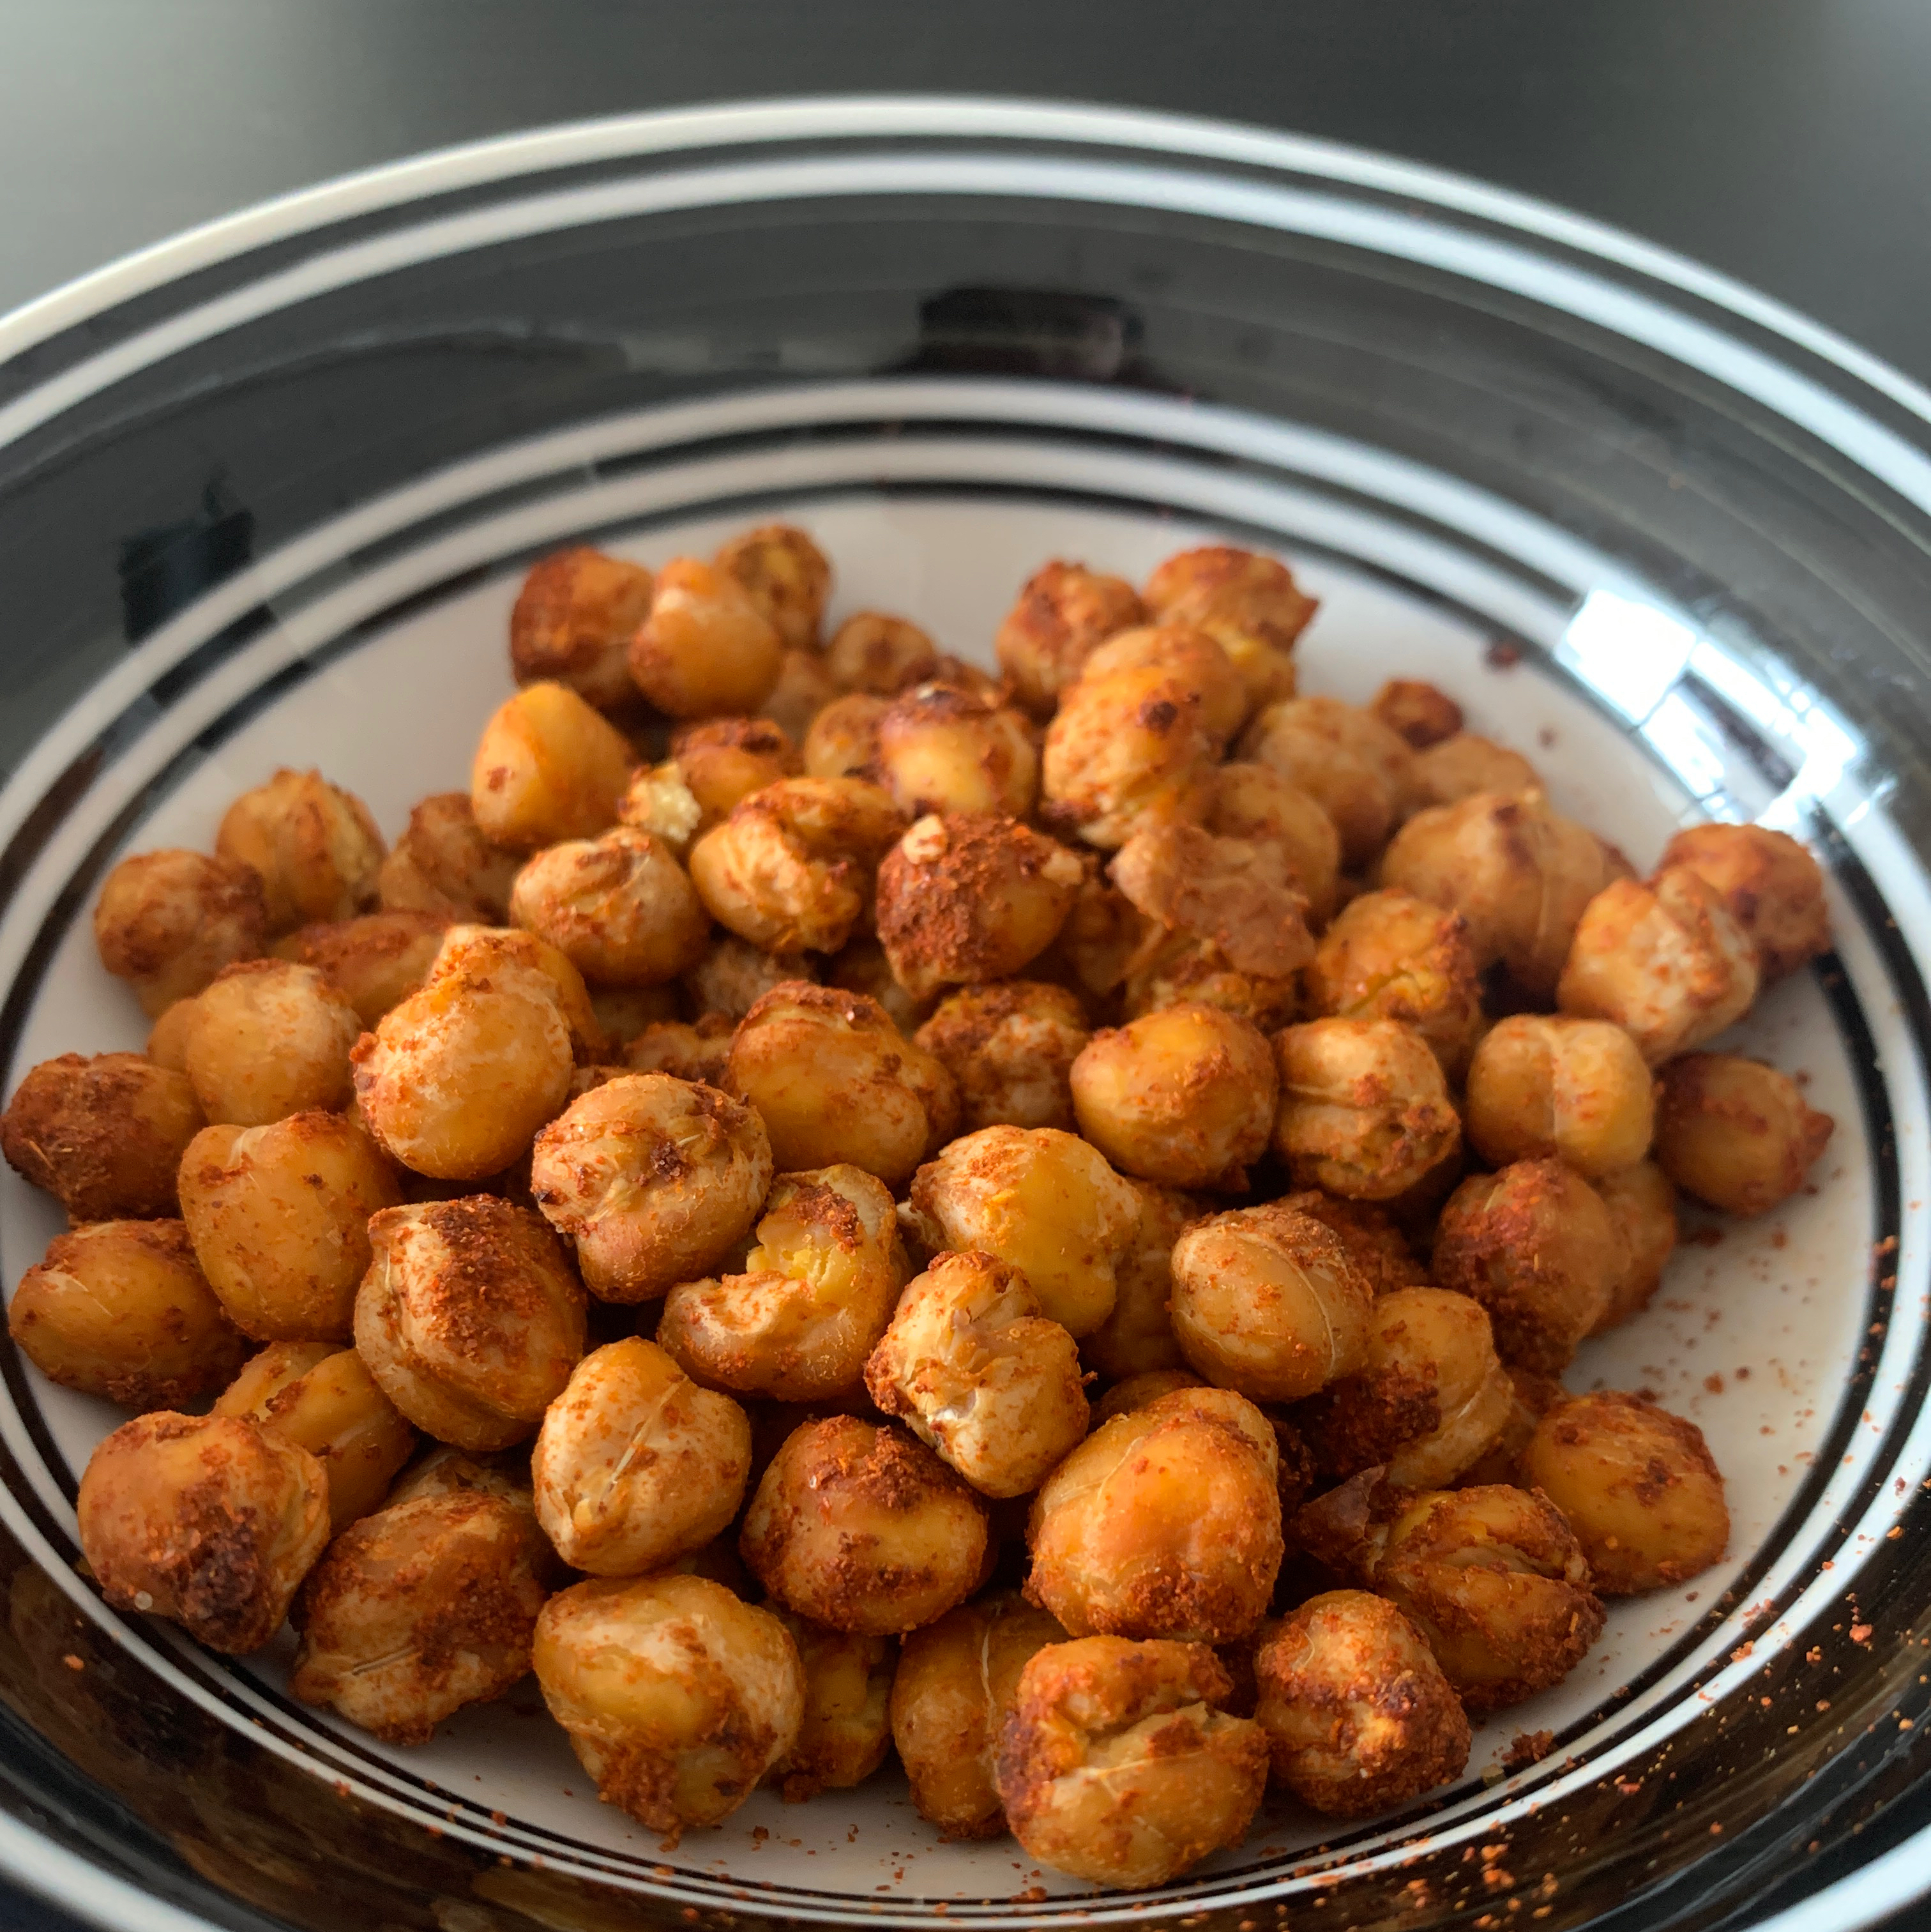 Spiced Air-Fried Chickpeas